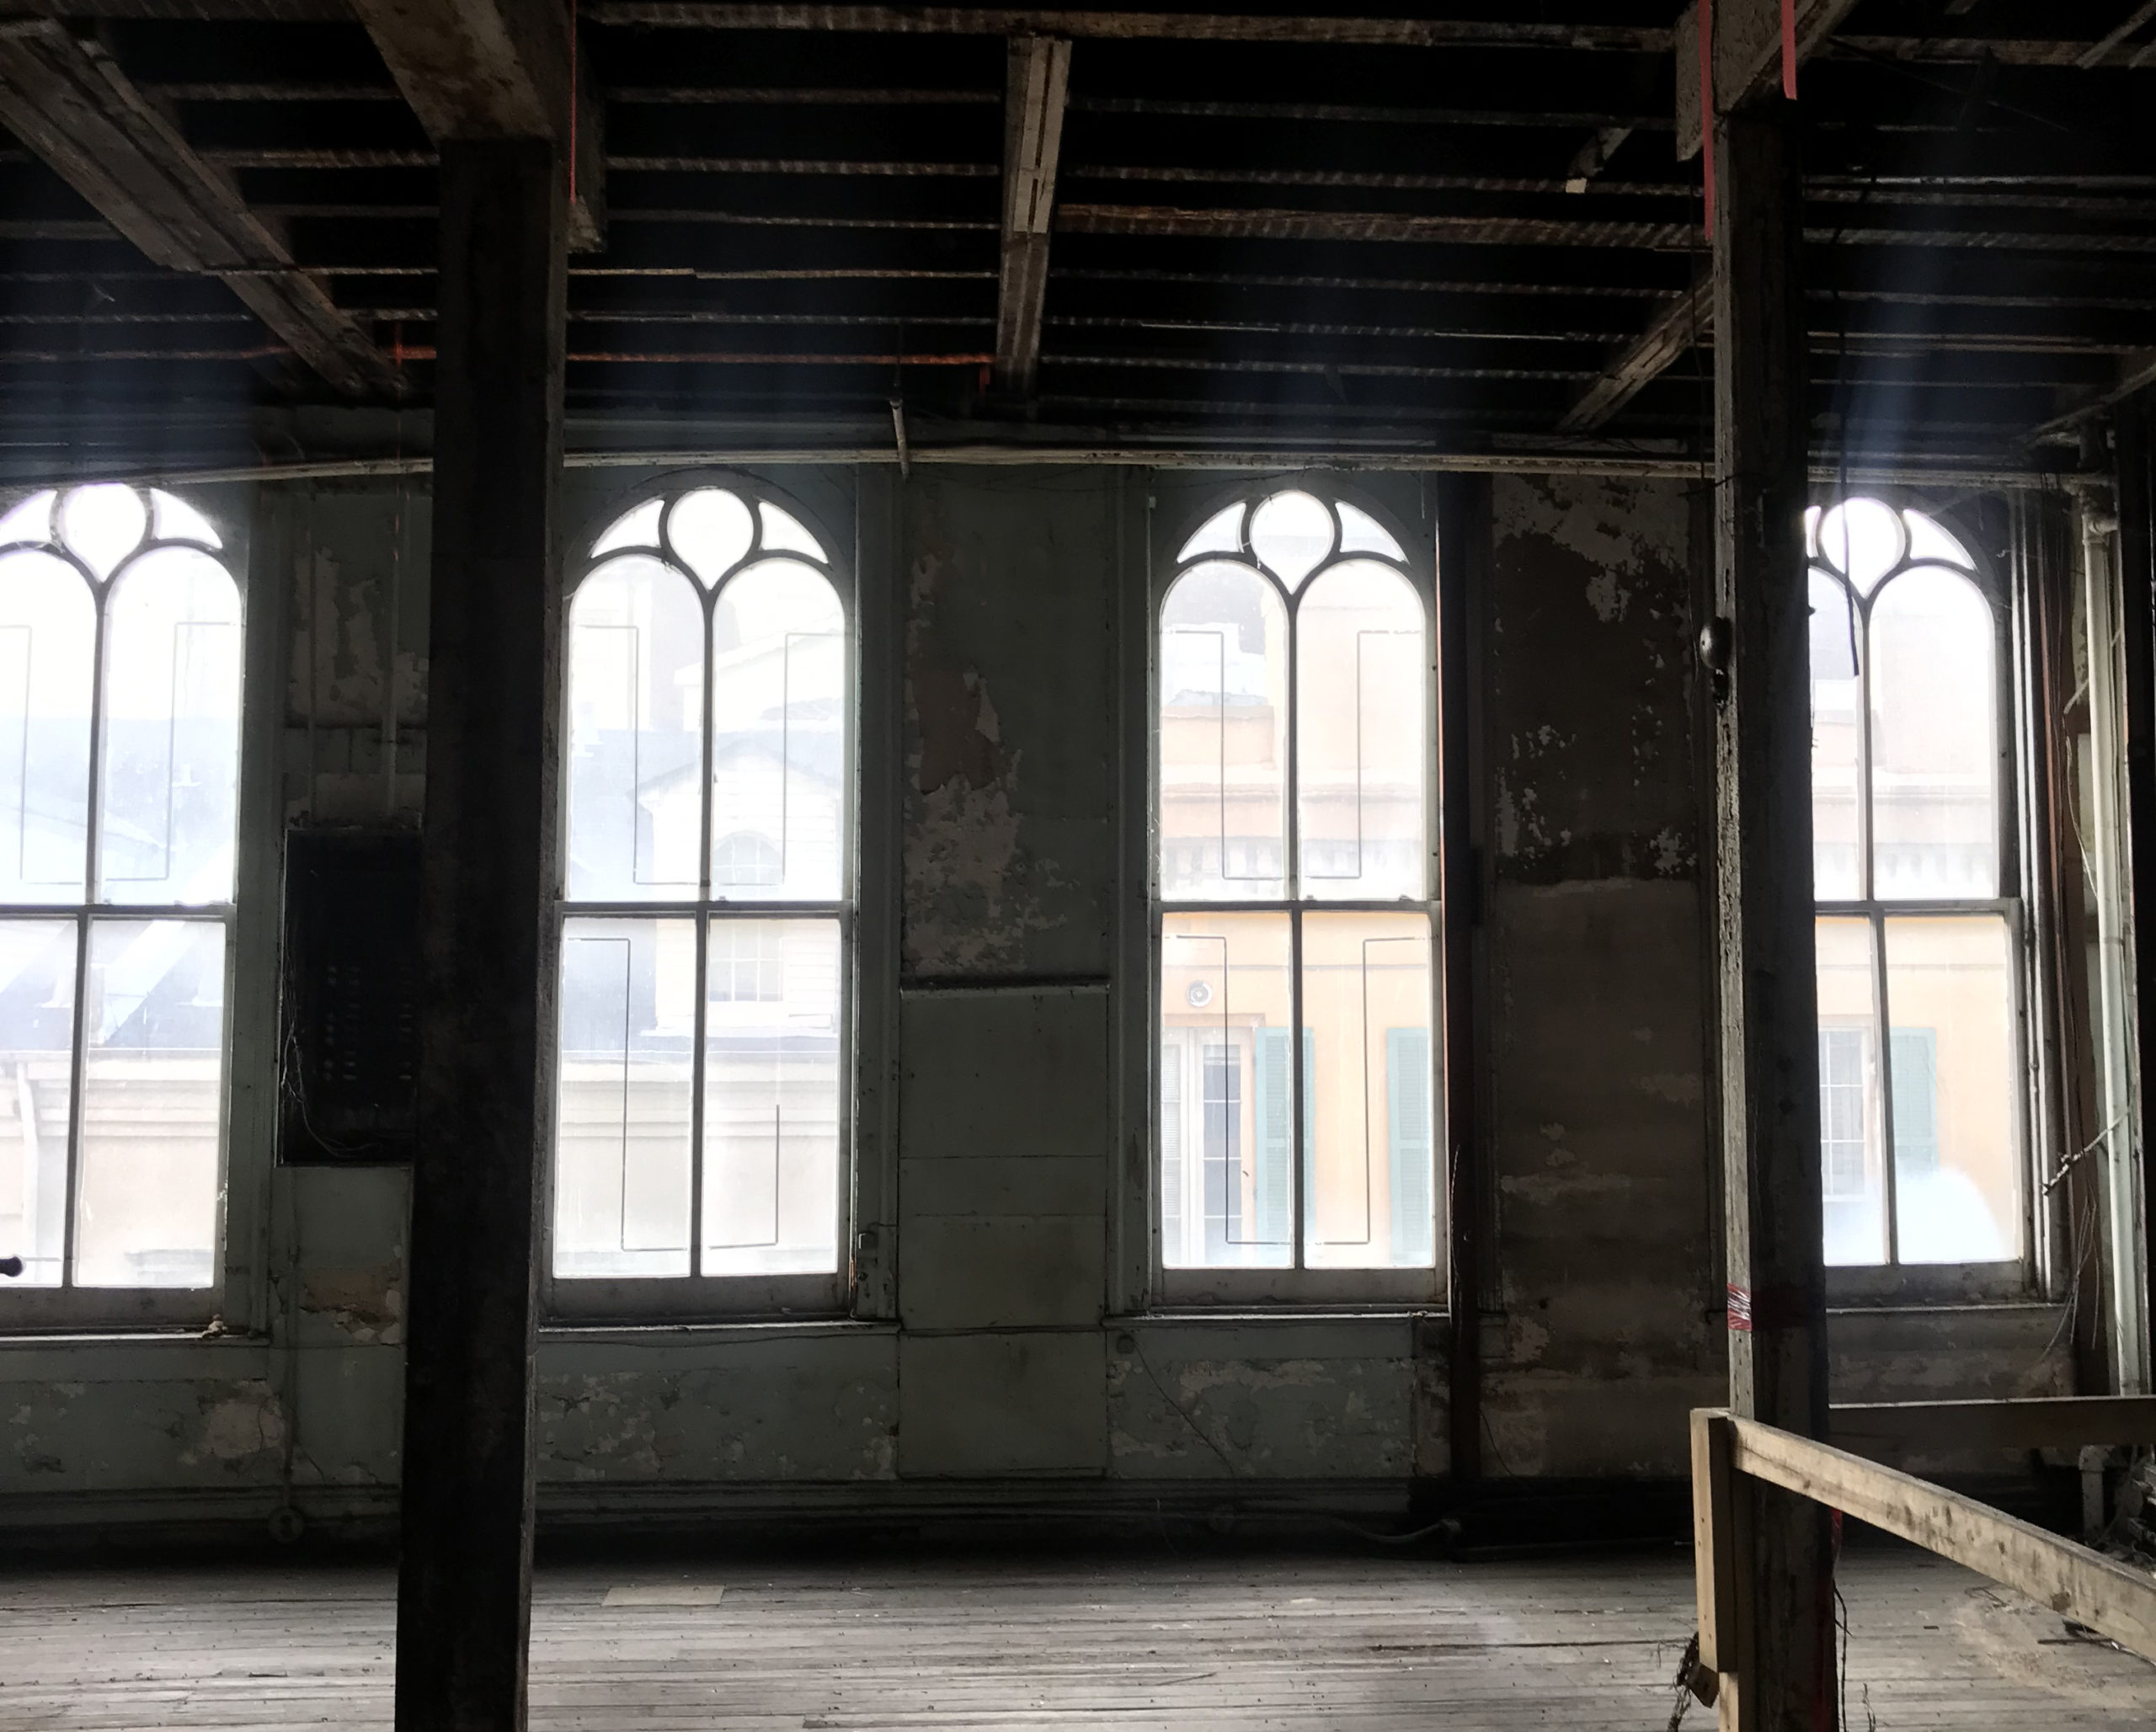 Palmisano projects 623 Canal windows